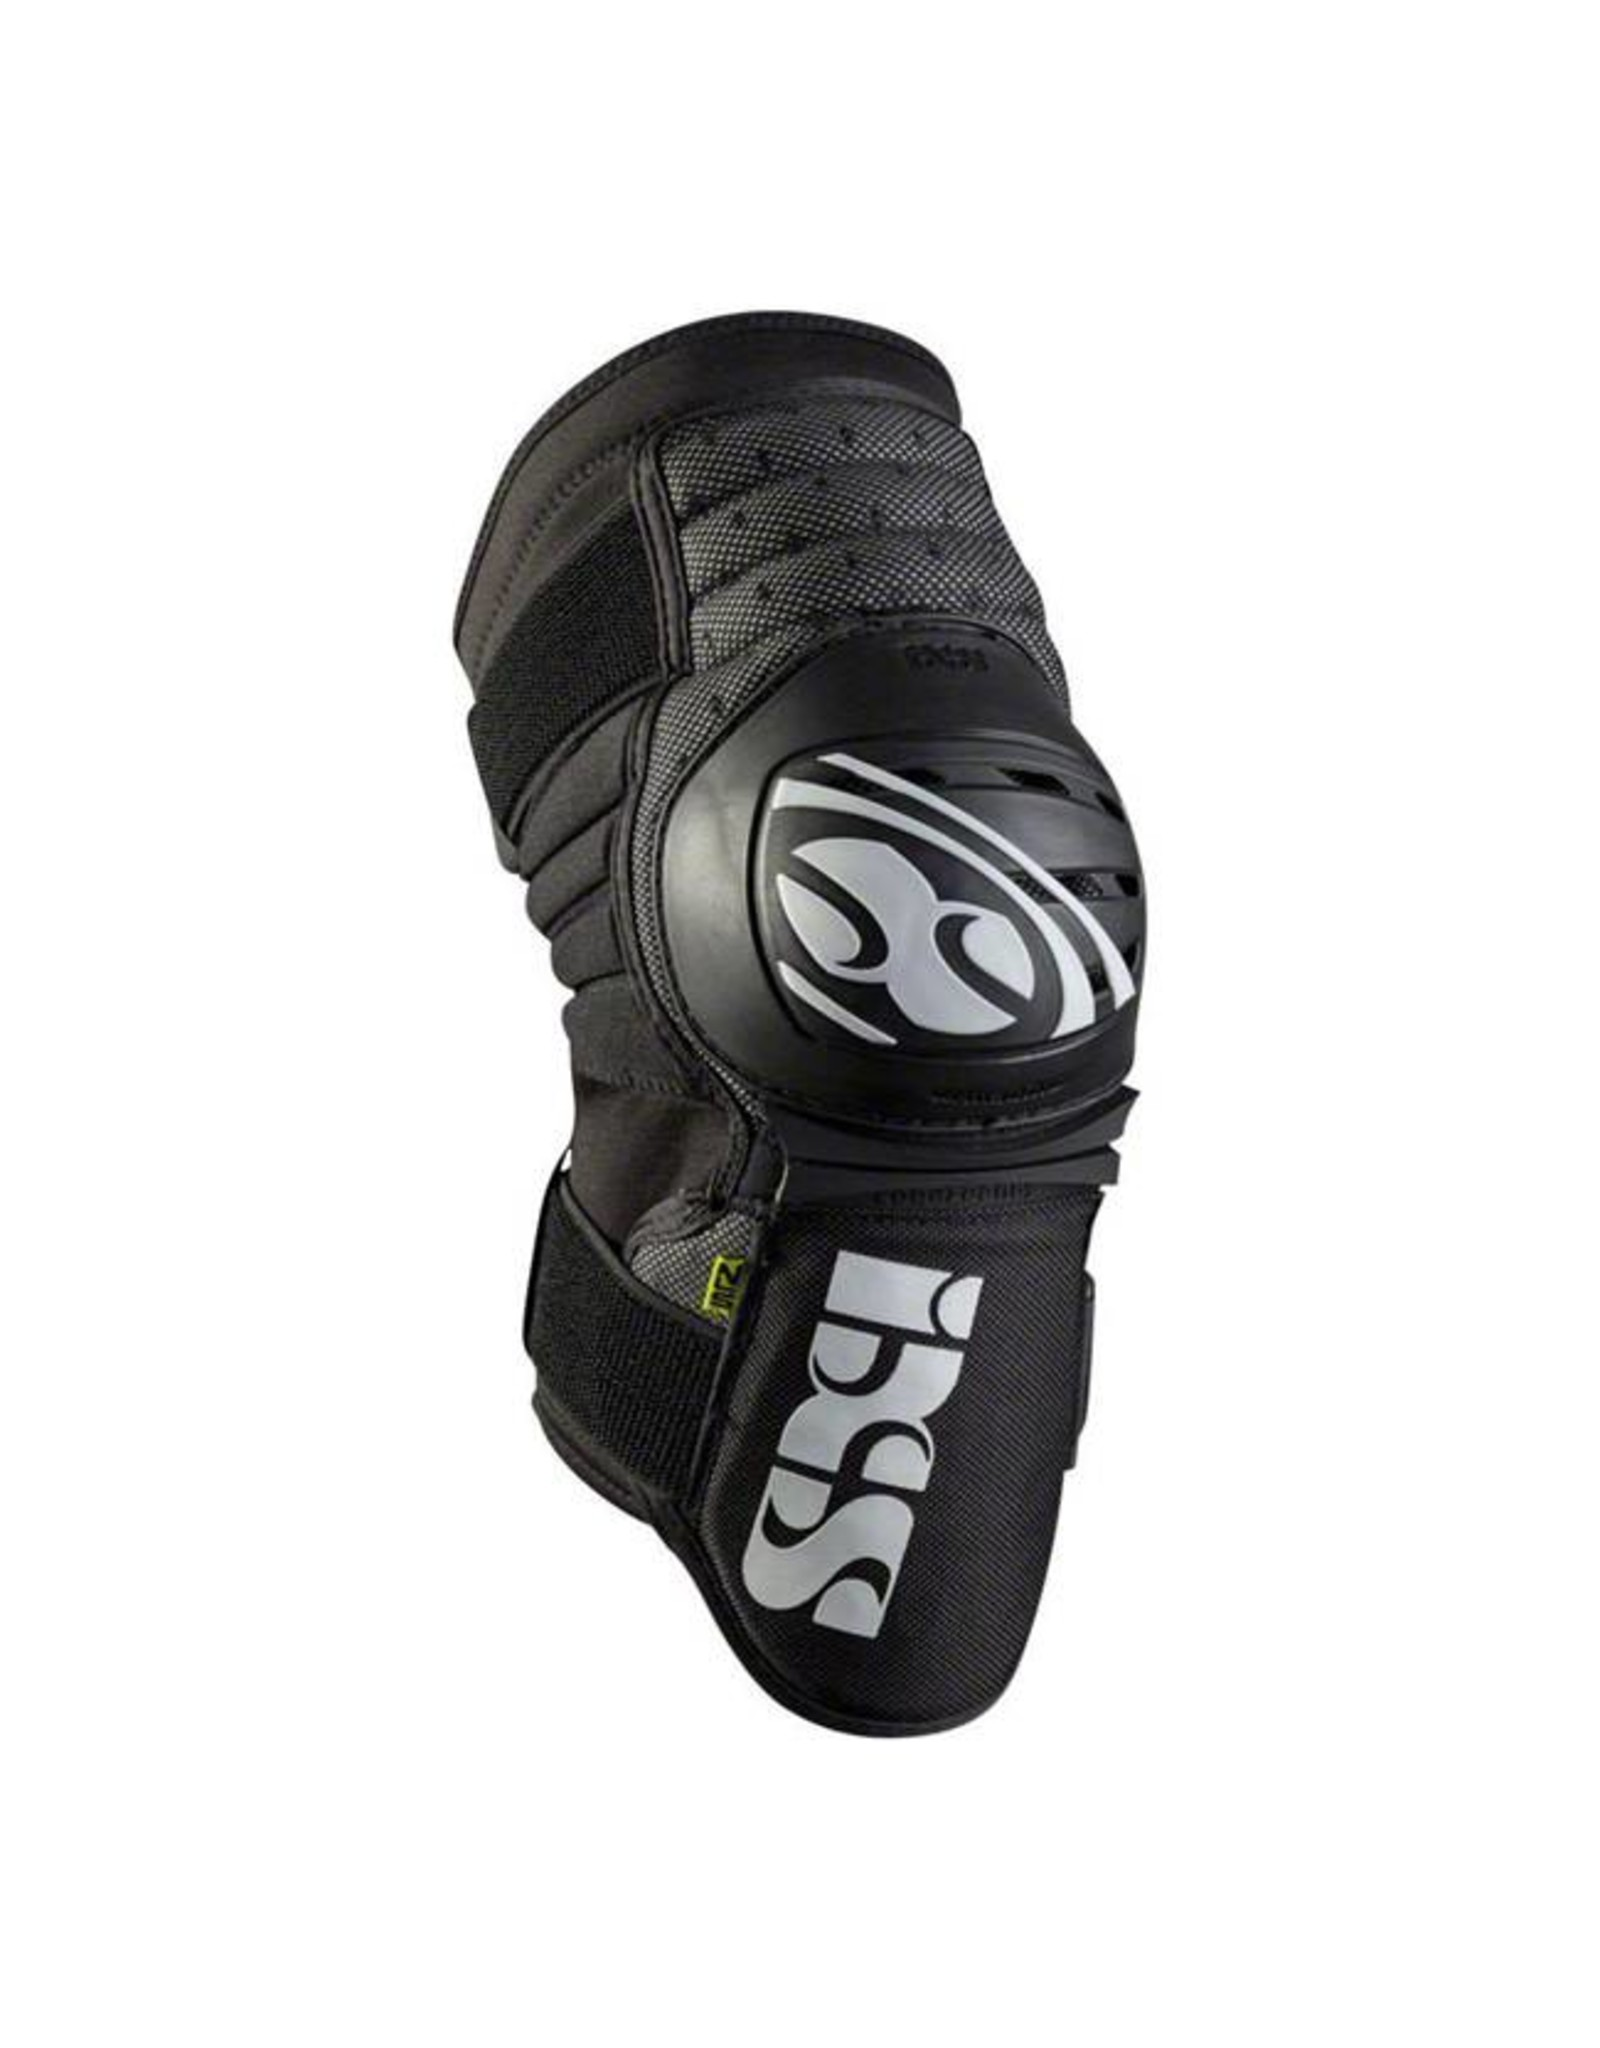 IXS iXS Dagger Knee Guard: Black, XL